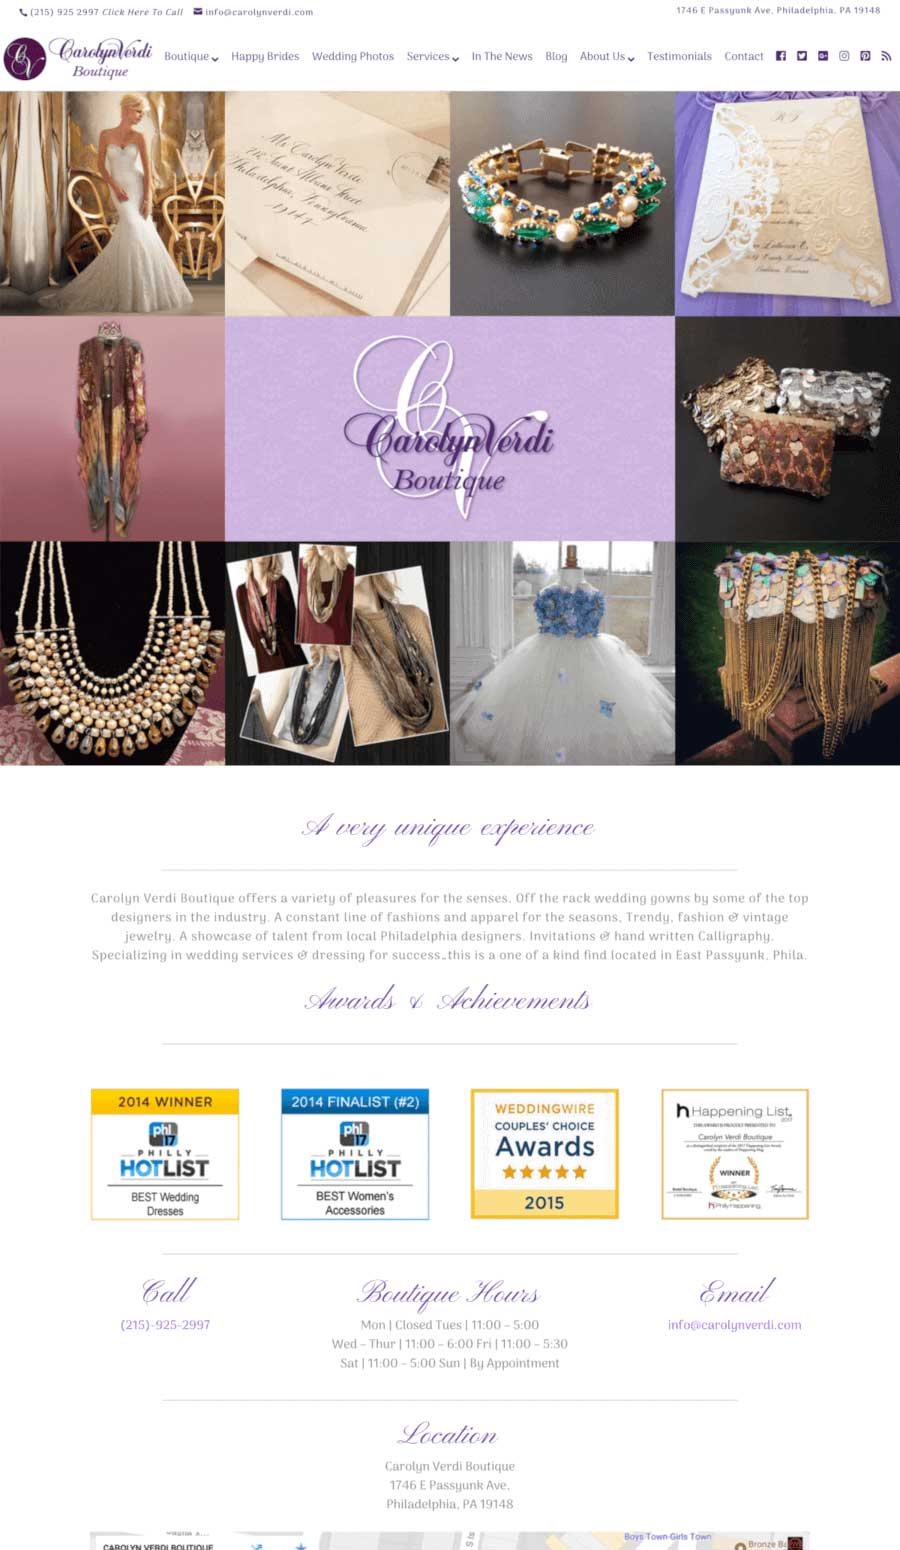 Carolyn Verdi Boutique Landing Page